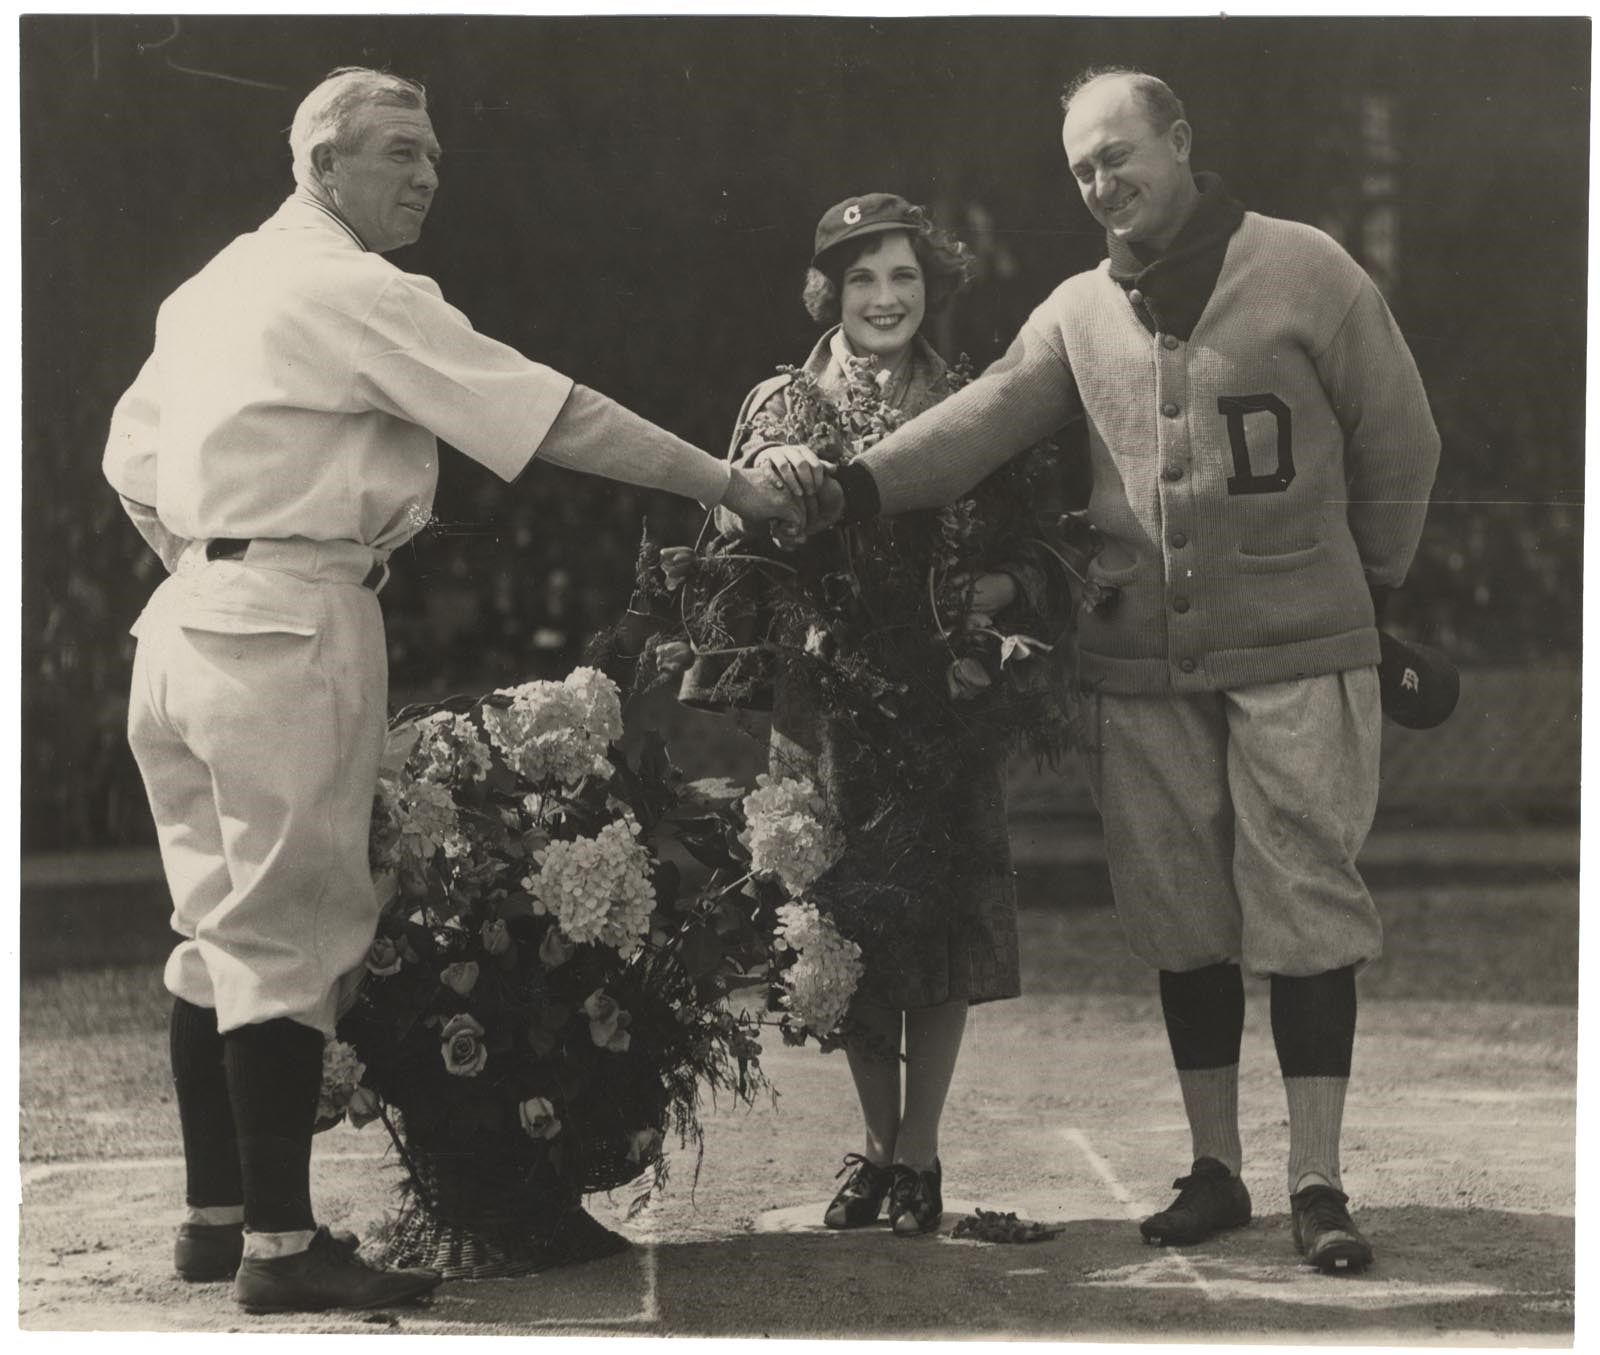 Vintage Sports Photographs - Monthly 12-18